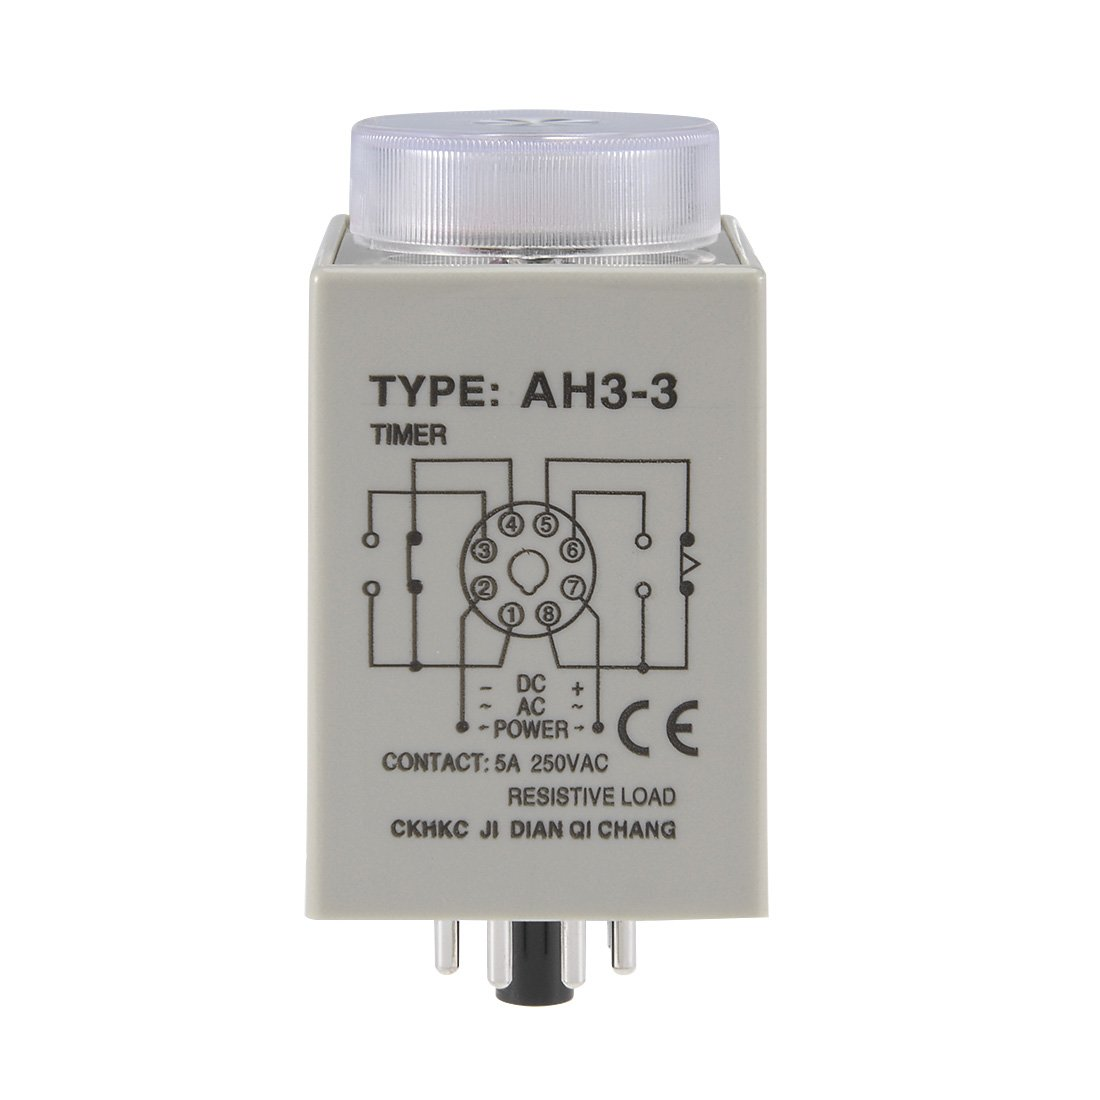 Uxcell Ac110v 6m 8 Terminals Range Adjustable Delay Timer Time Relay Digital Stopwatch 060sec Circuit Ah3 3 With Base